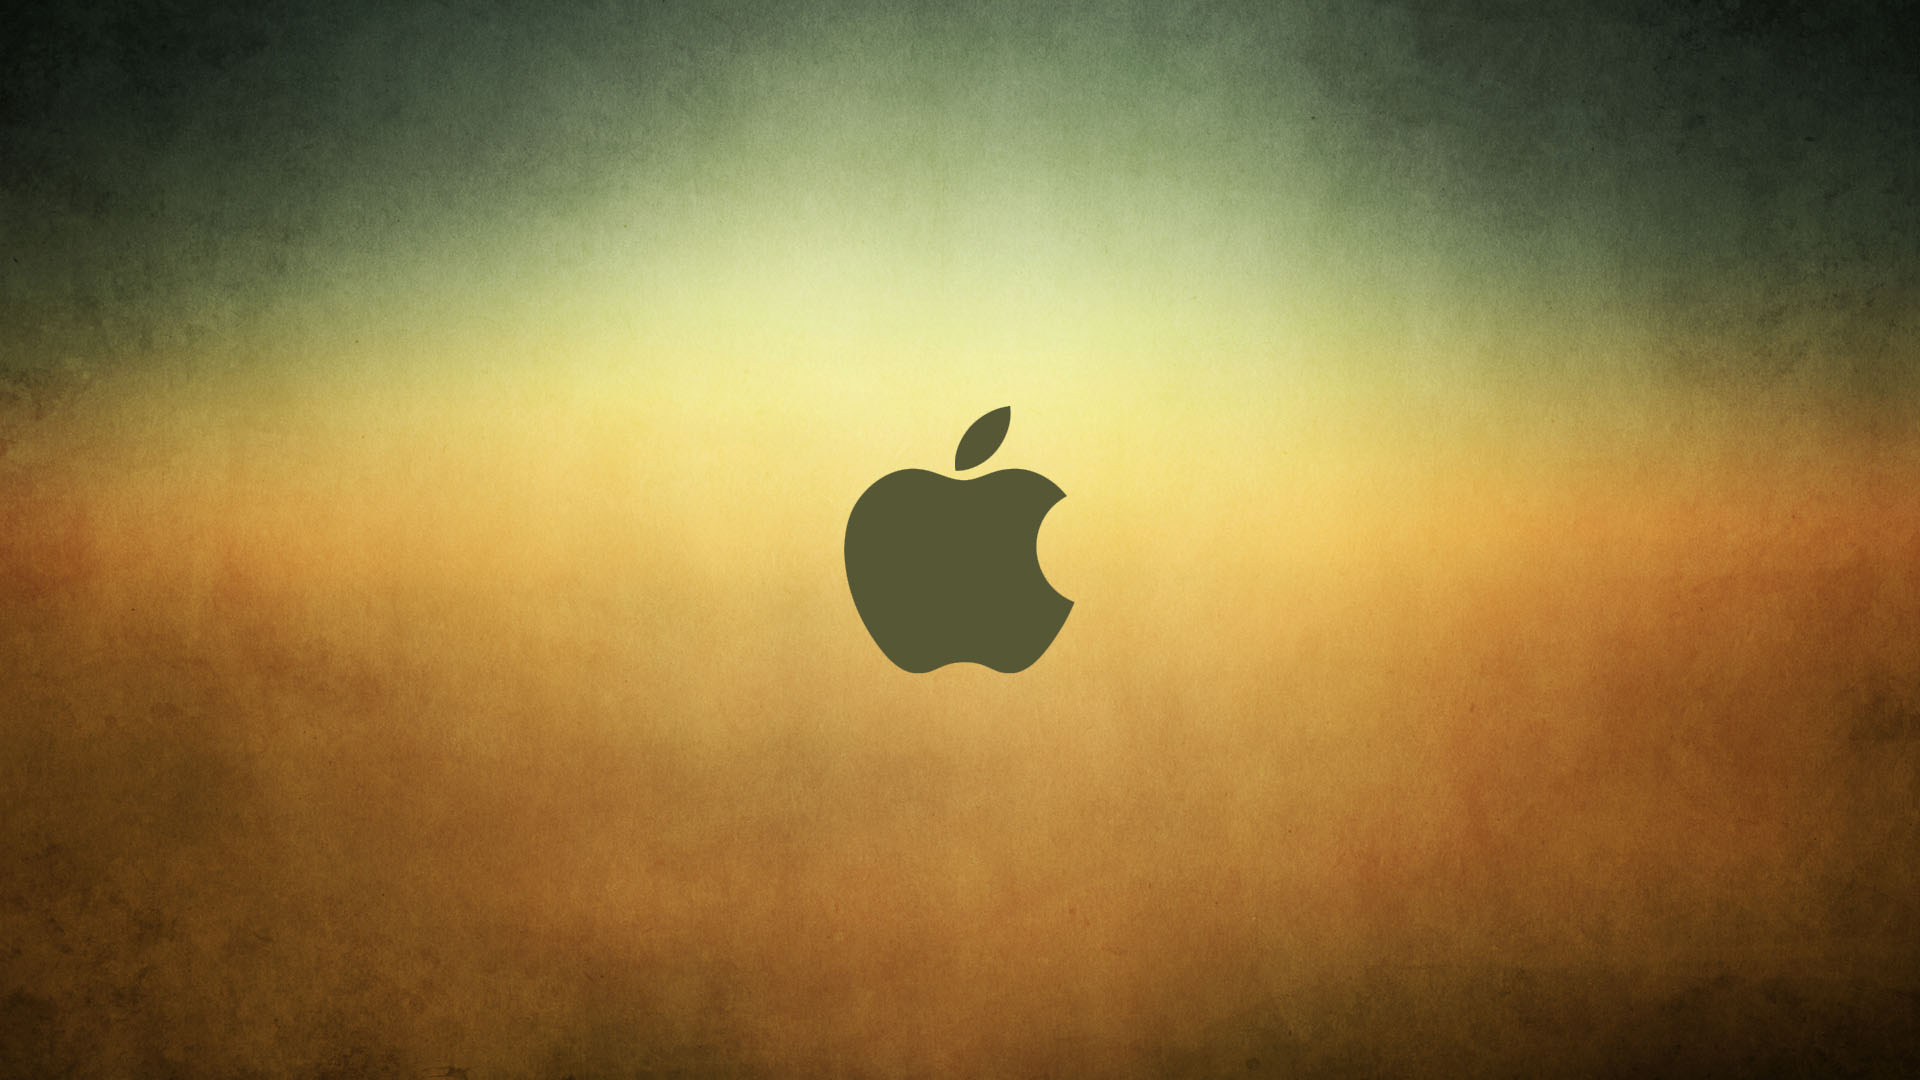 Apple Wallpapers For Desktop